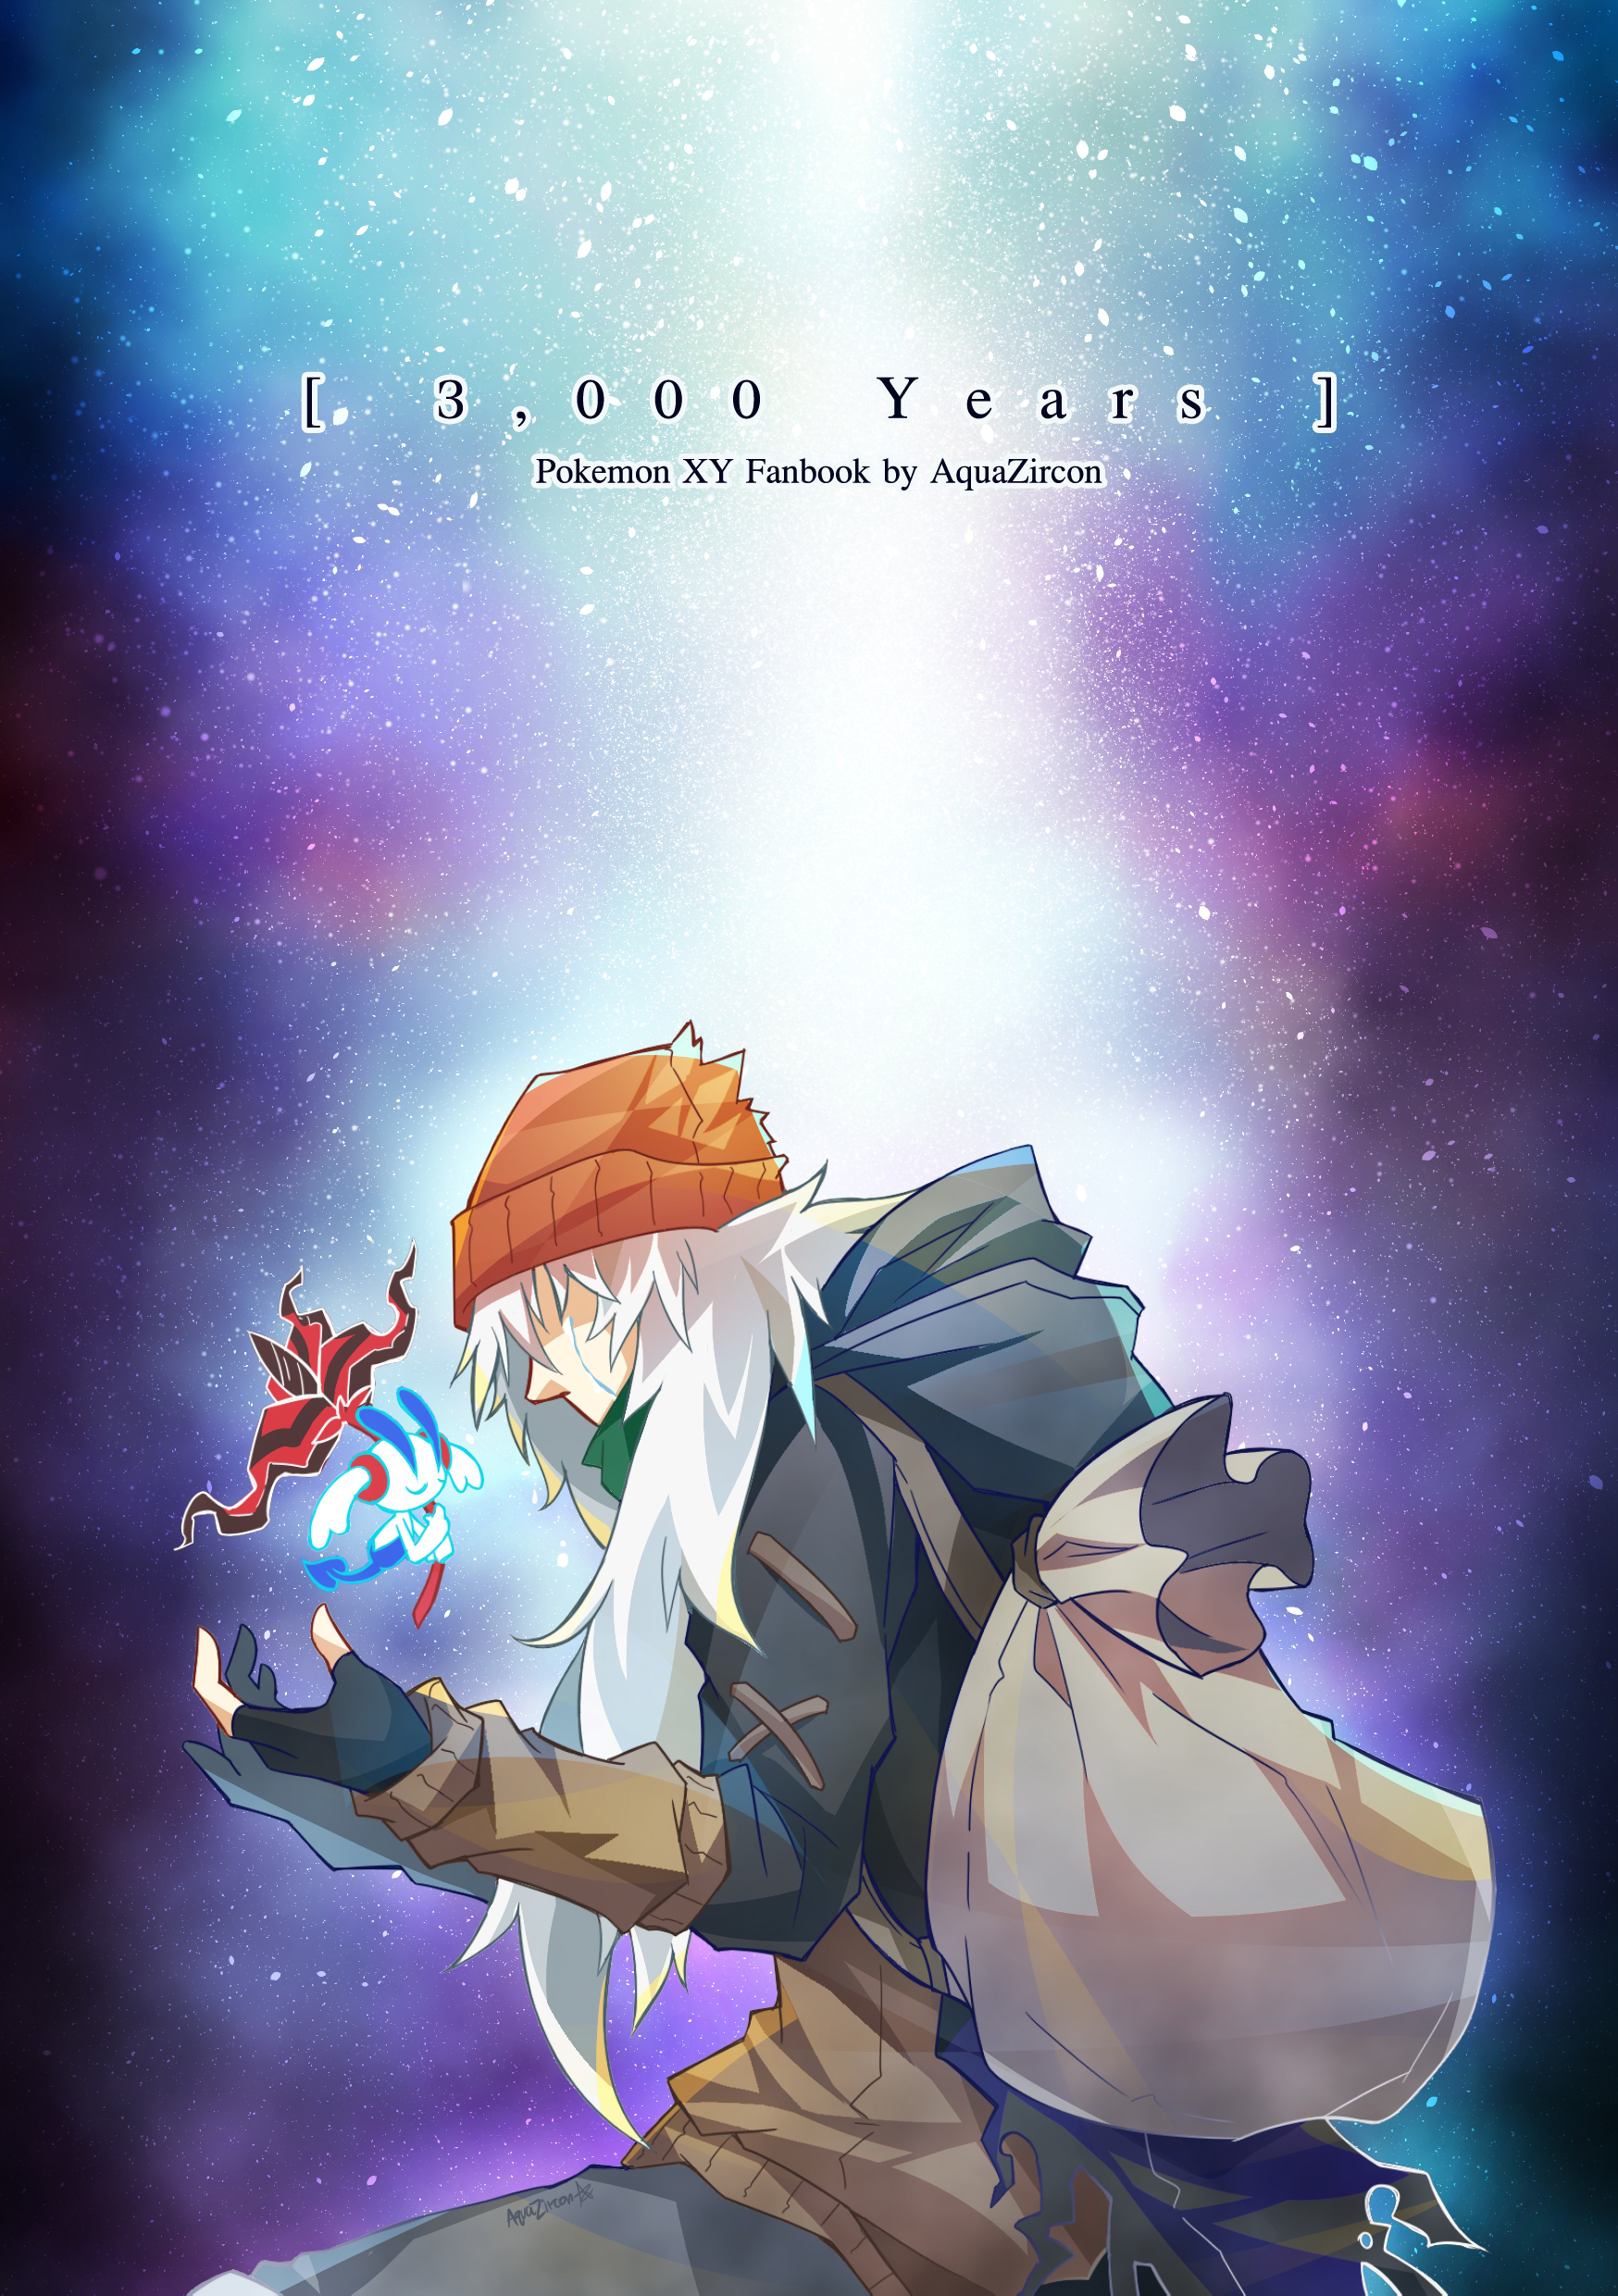 3,000 Years - Pokemon XY Fanbook (Thai Ver  with English translate sheet)  from AquaZircon